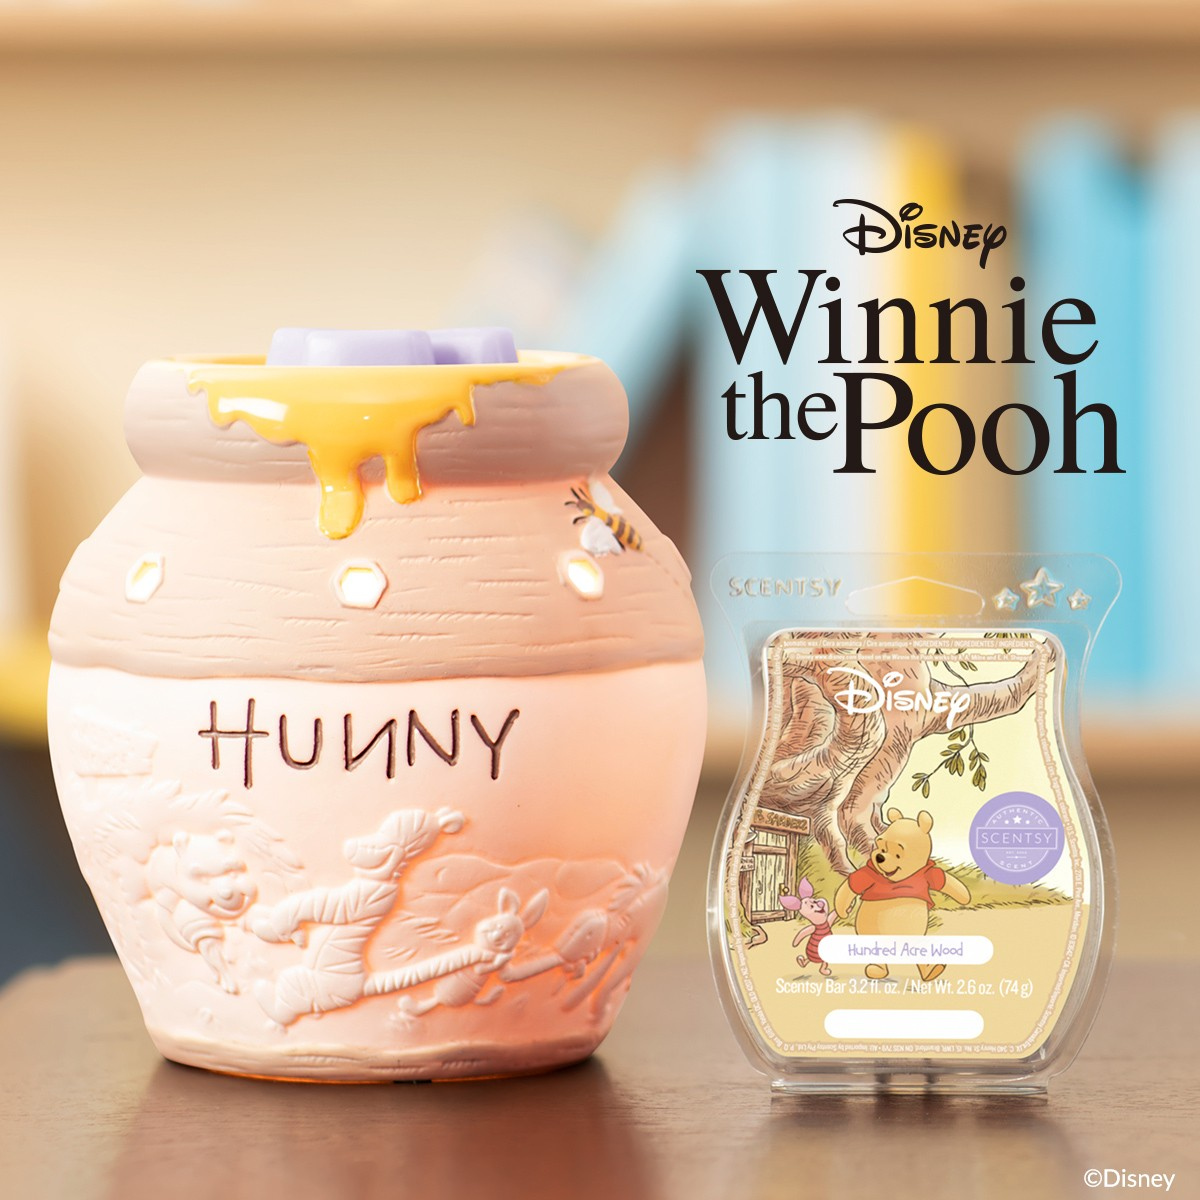 Trista On Twitter Winniethepooh Fans Scentsy Candle Warmer The Bee S Knees Overflowing Honey Playful Romp Between Hundred Acre Wood Friends Captured Https T Co Tugn955nuc Disney Disneylife Winnie Honey Candle Home Decor